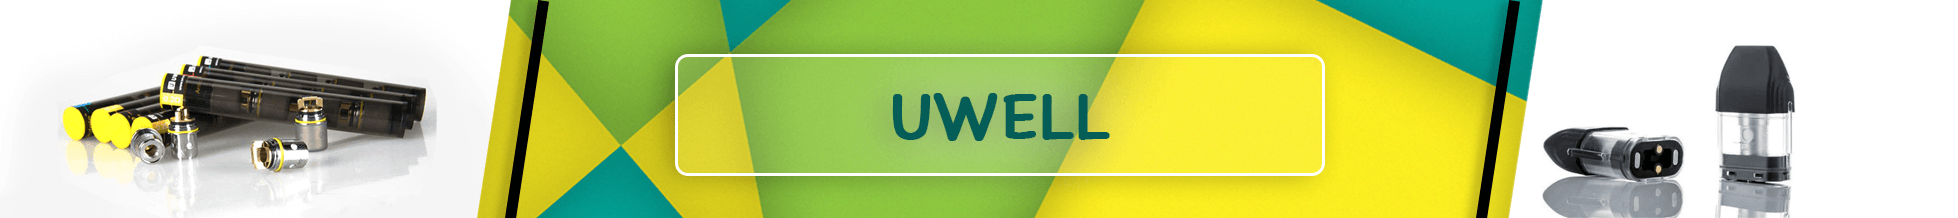 uwell-category-banner.png